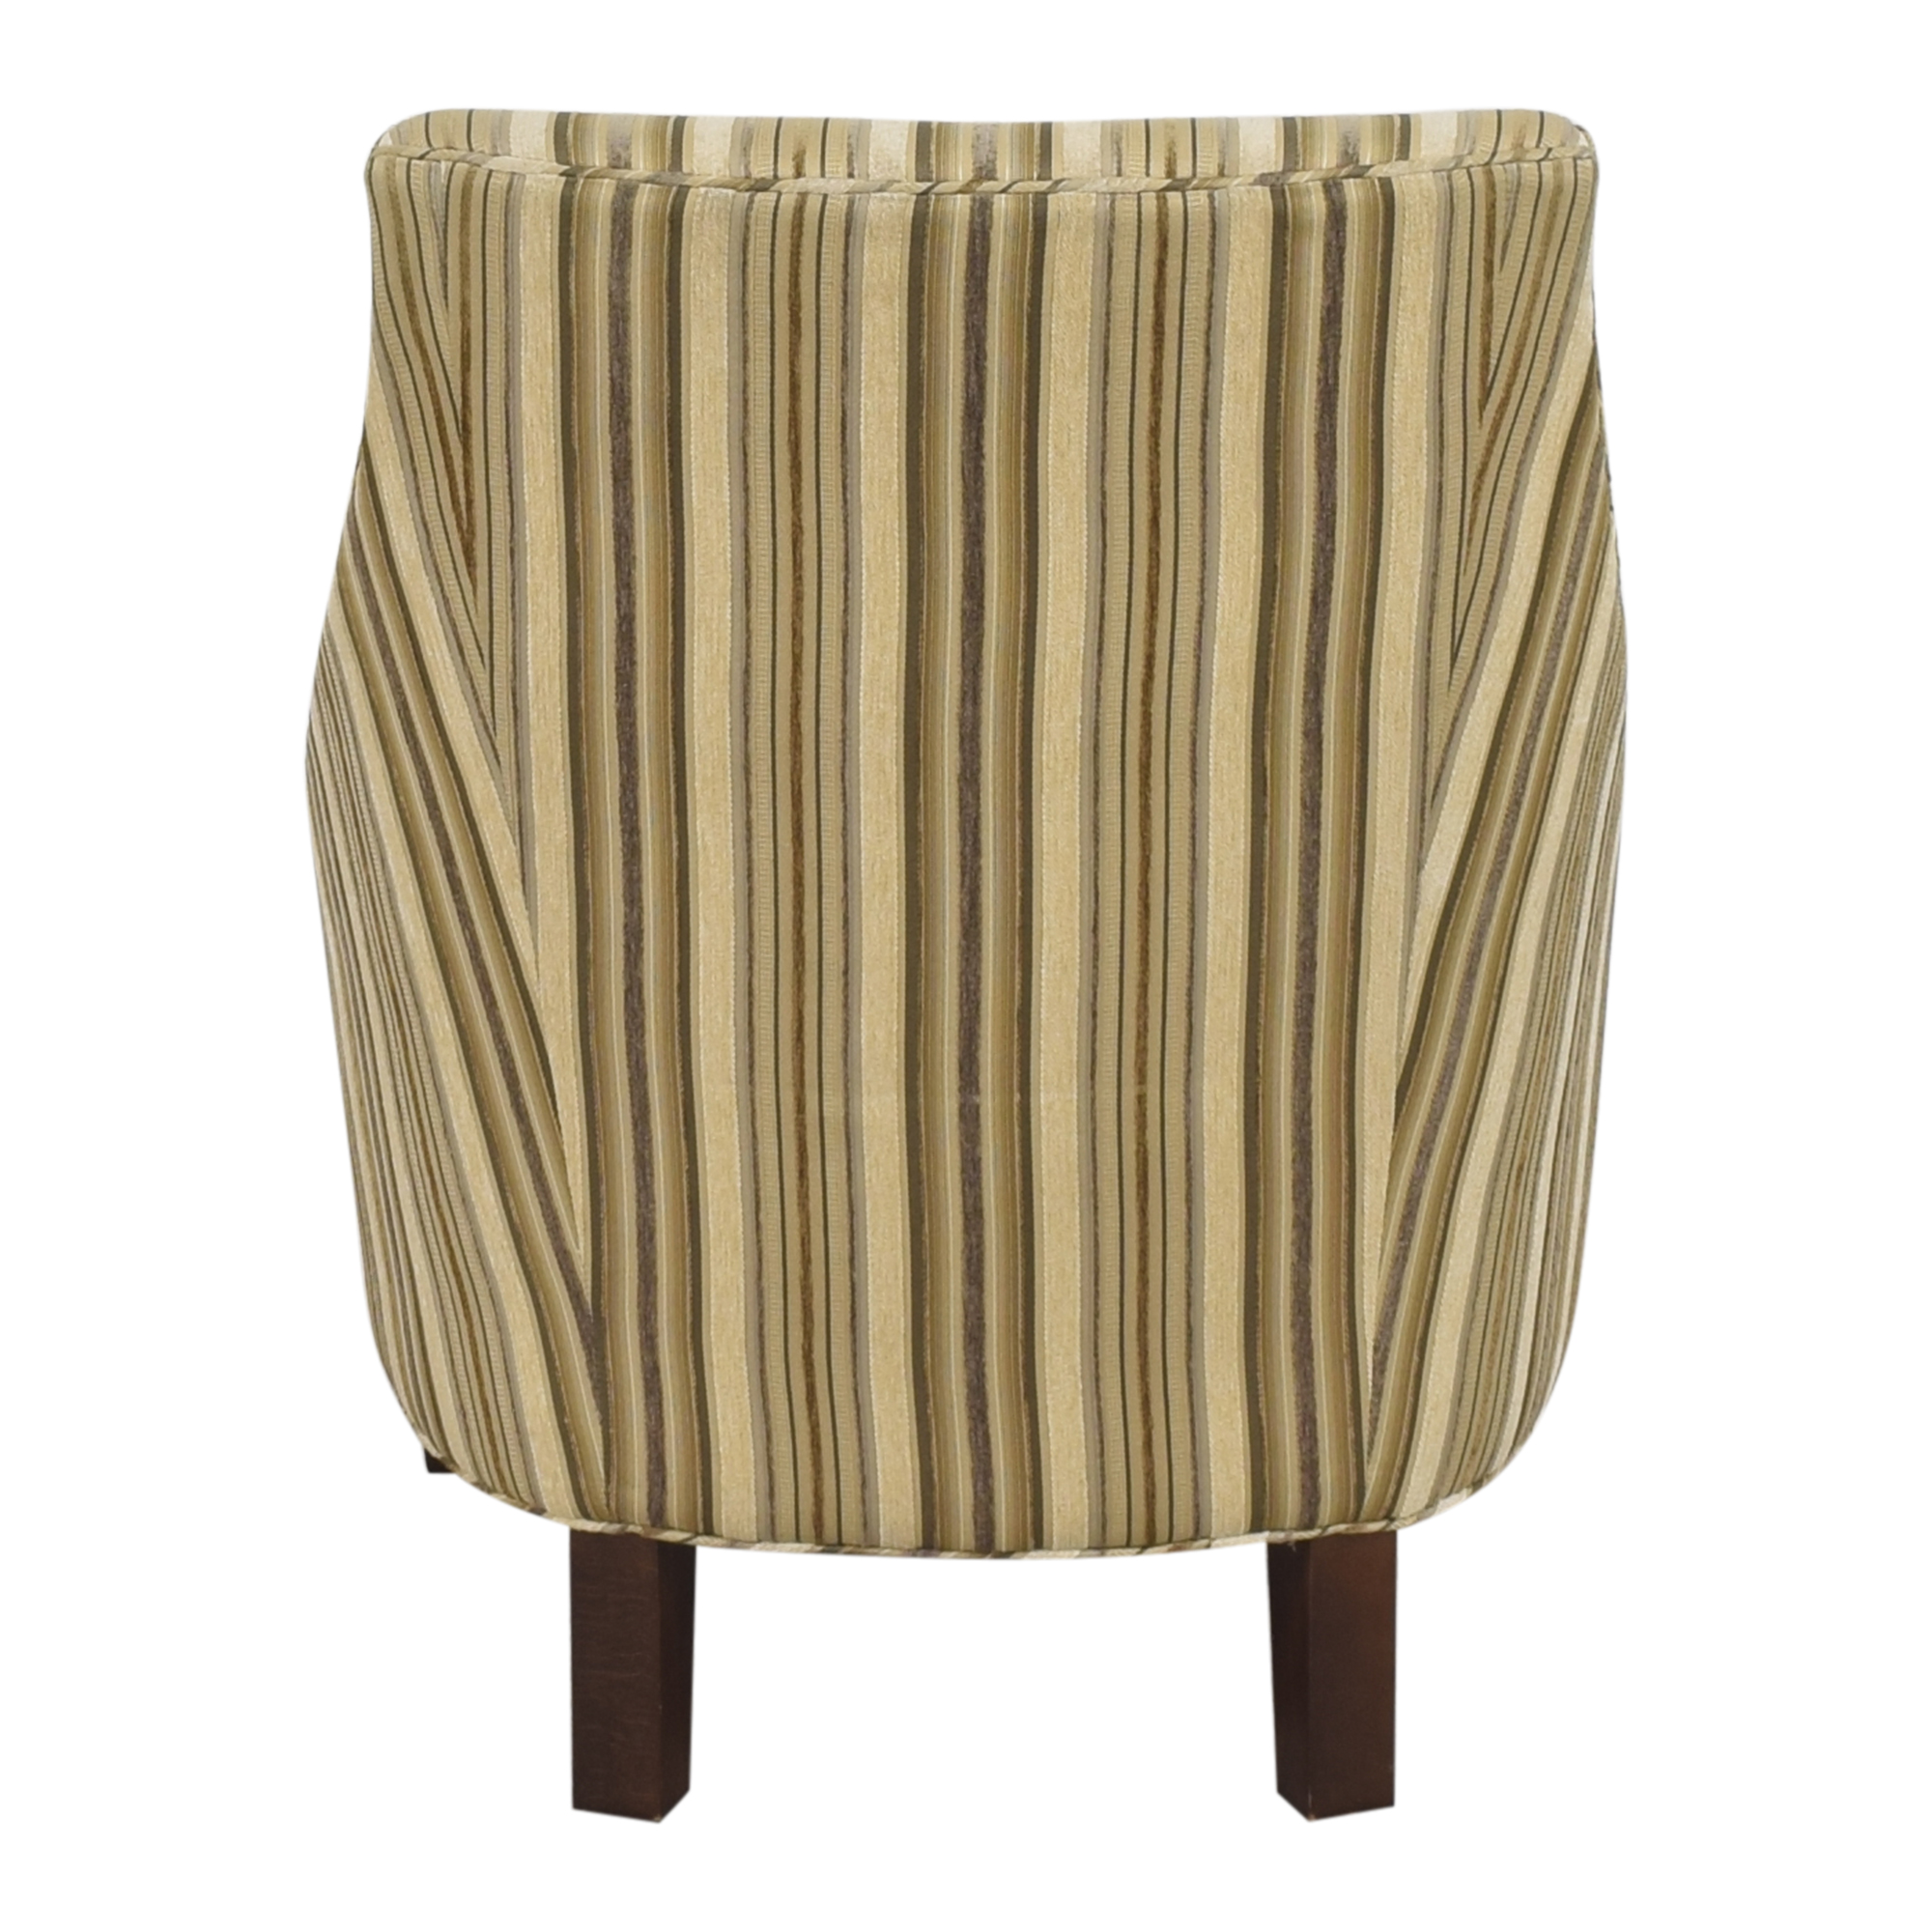 Lillian August Lillian August Accent Chair on sale